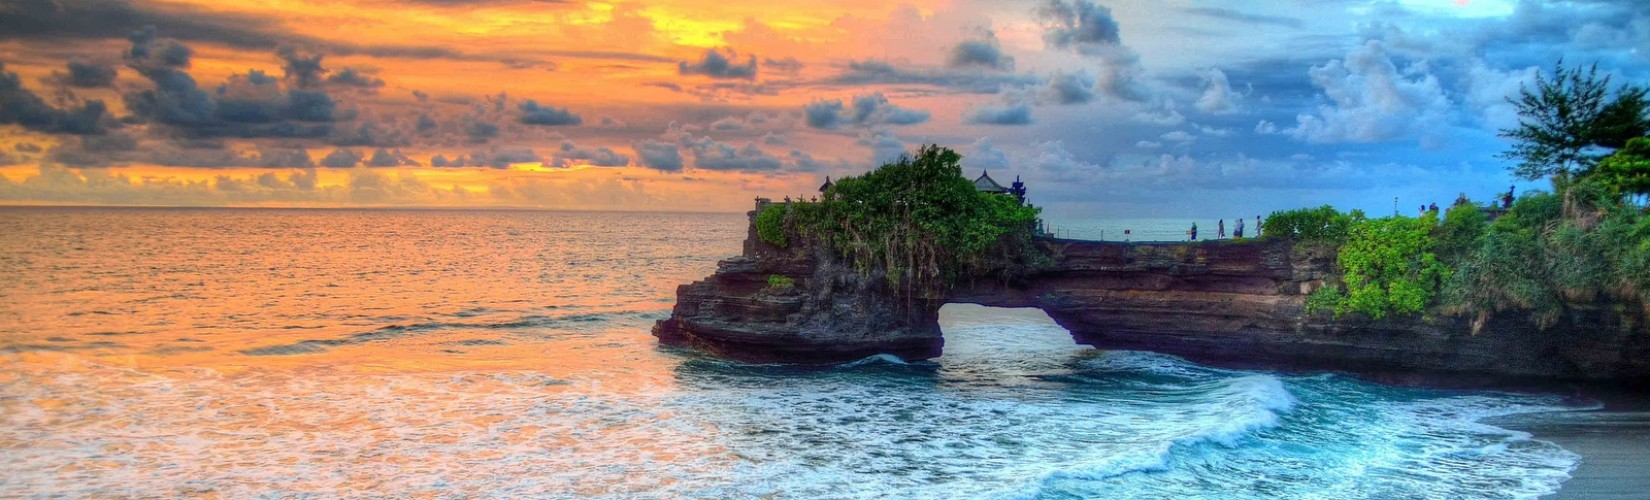 Best Place to Visit in Bali